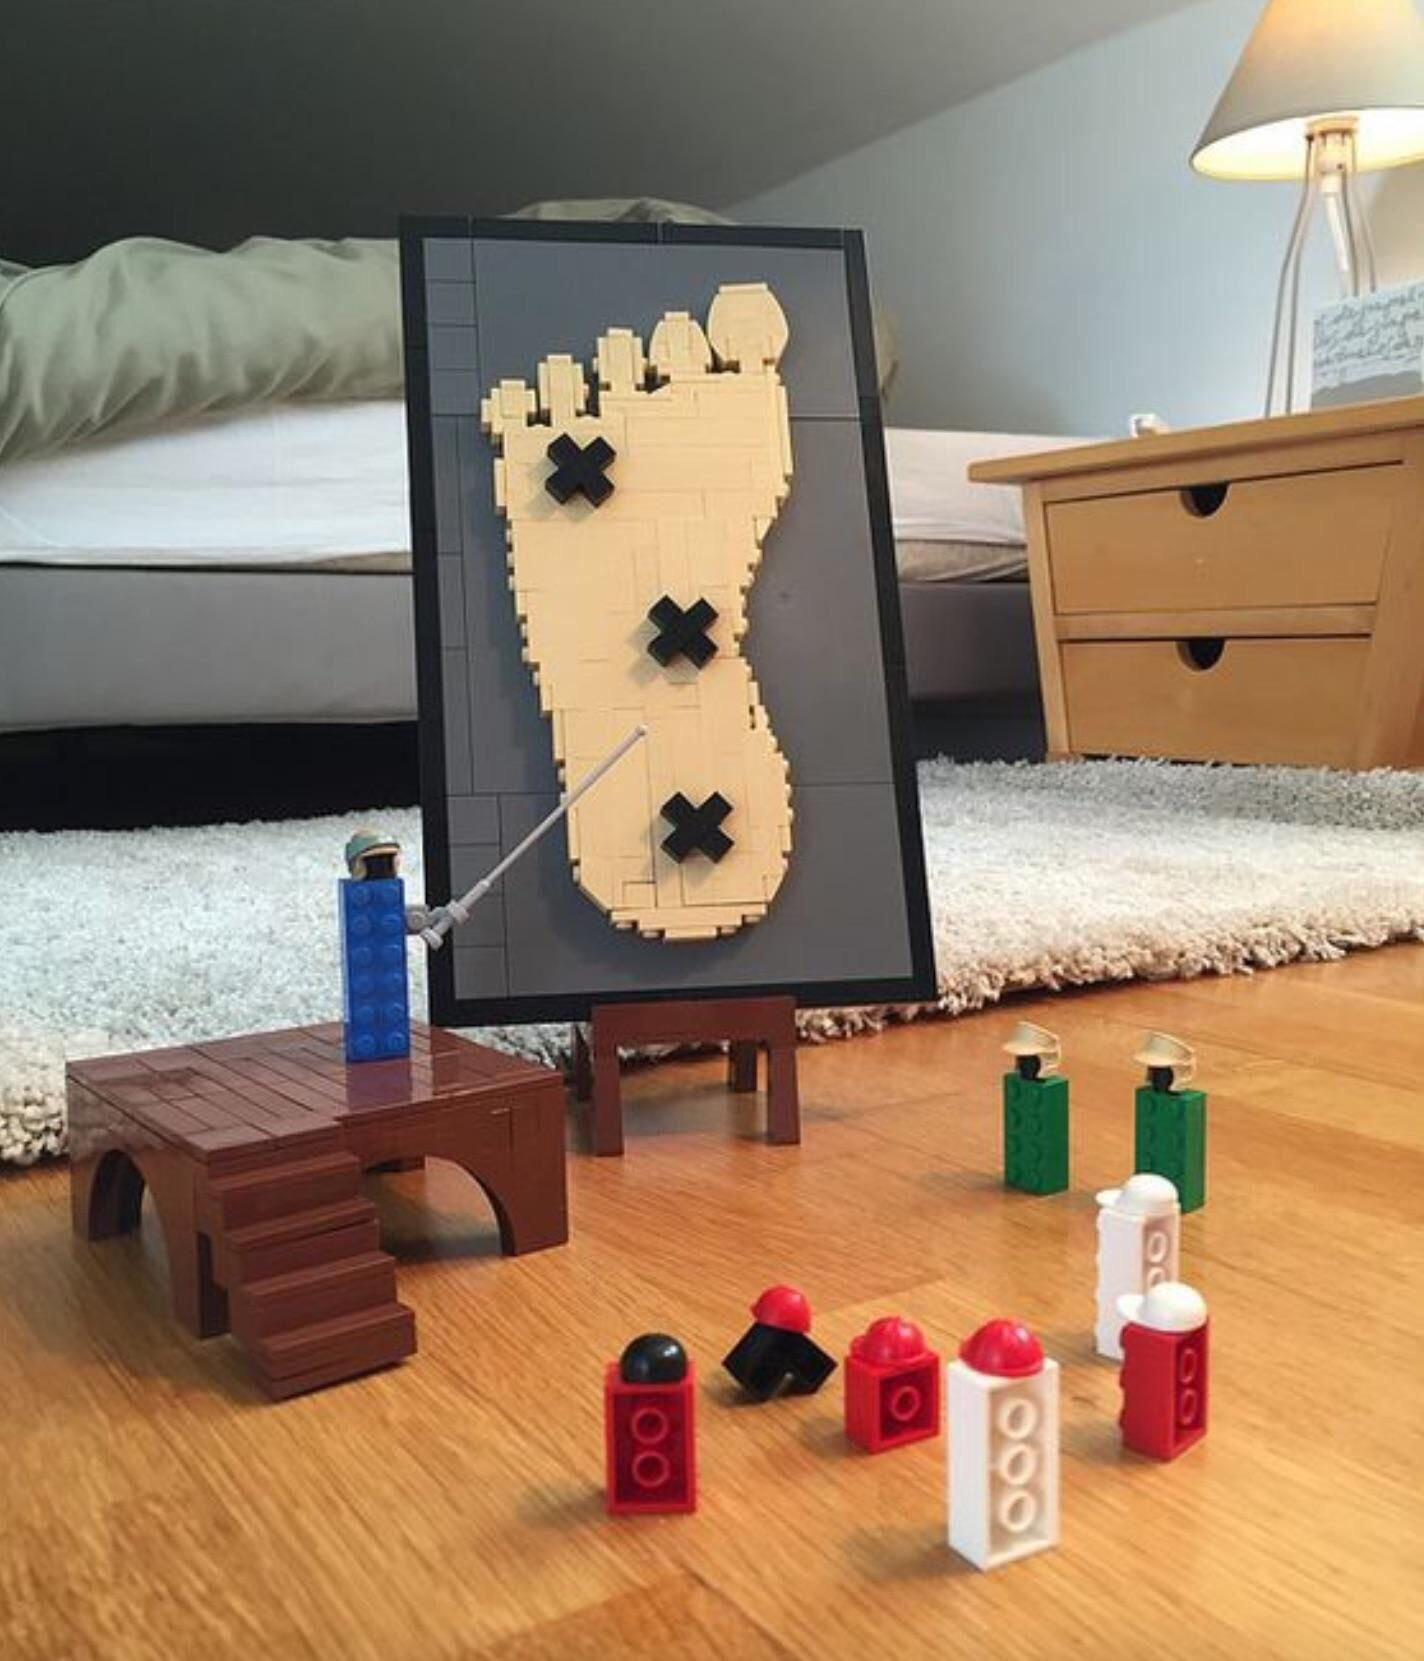 Legos plotting the demise of humanity.